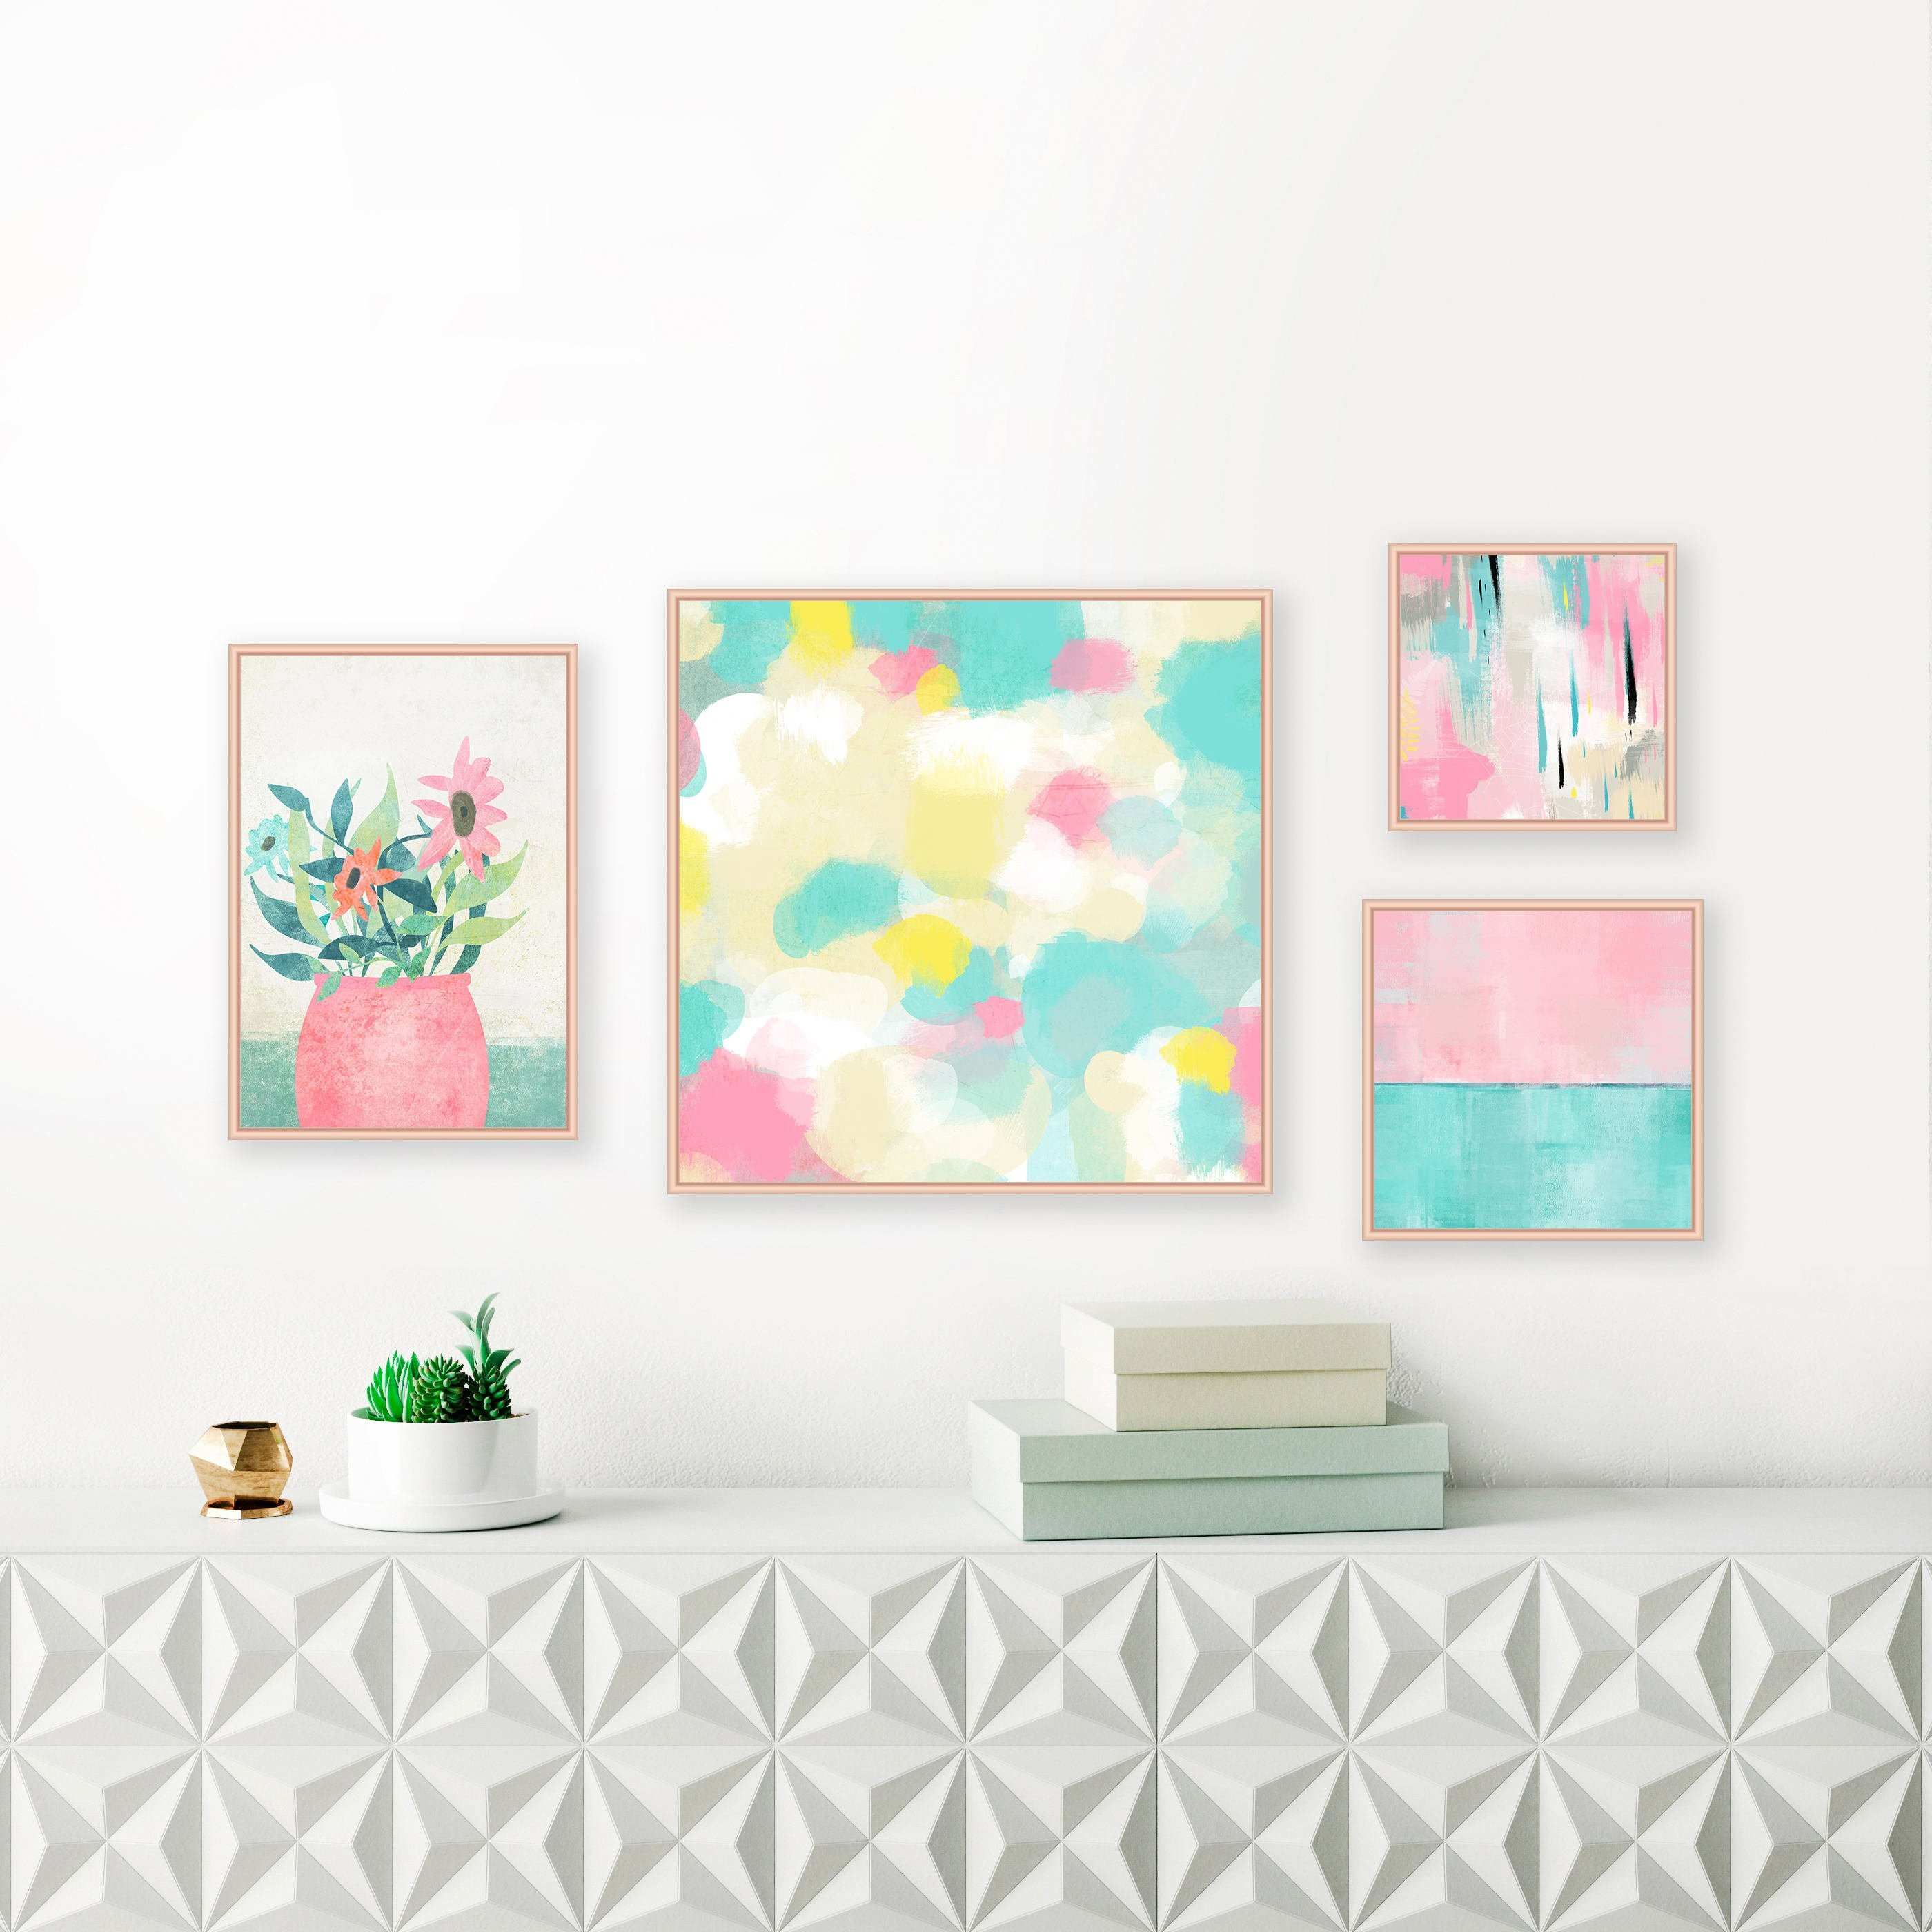 Gallery Wall Art Set of 4 Abstract Art Prints Pastel Paintings